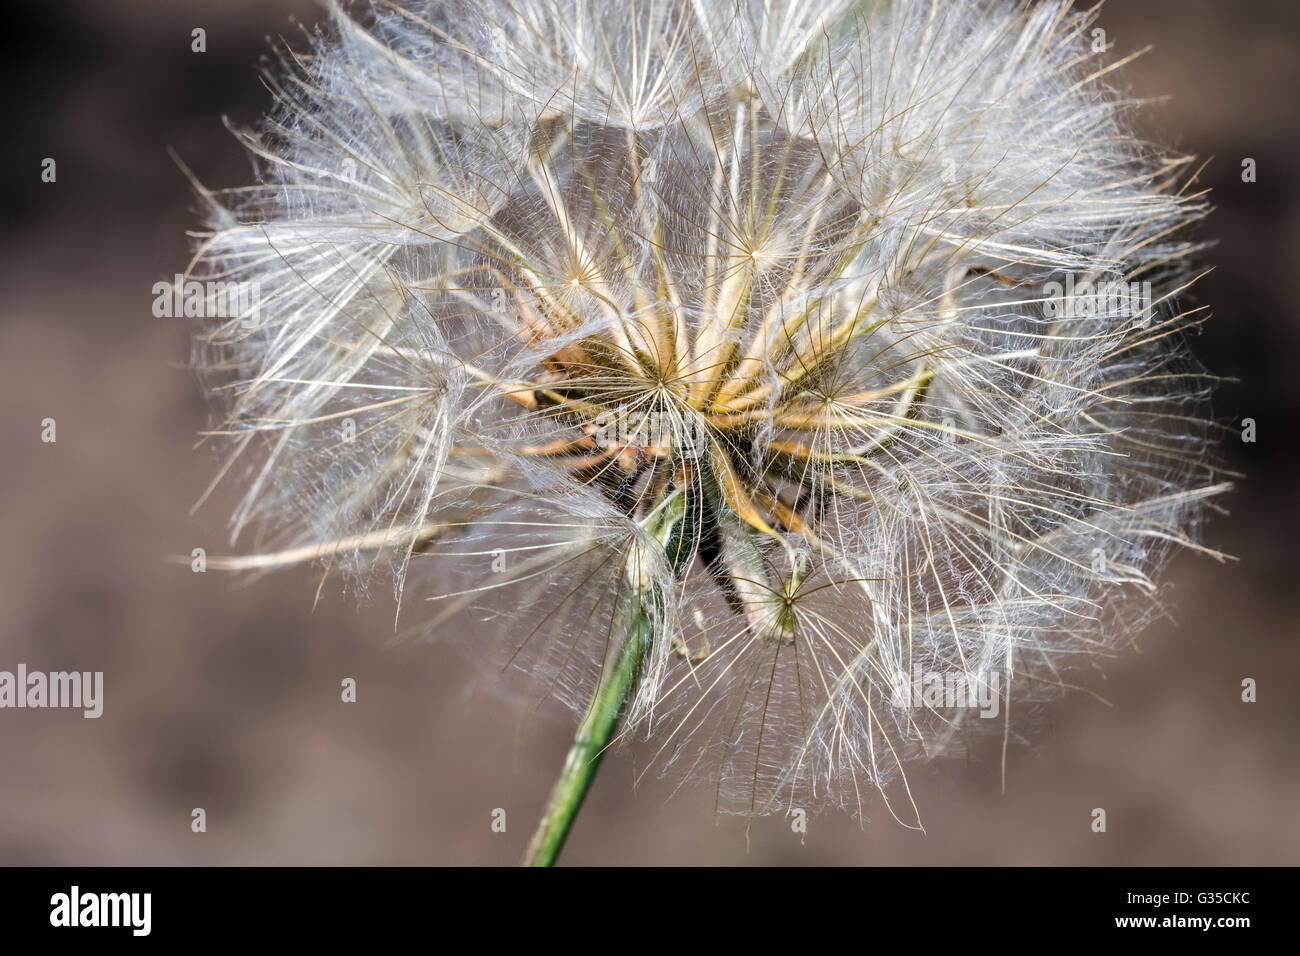 Jack-go-to-bed-at-noon / meadow salsify / meadow goat's-beard (Tragopogon pratensis) showing feathery bristles - Stock Image